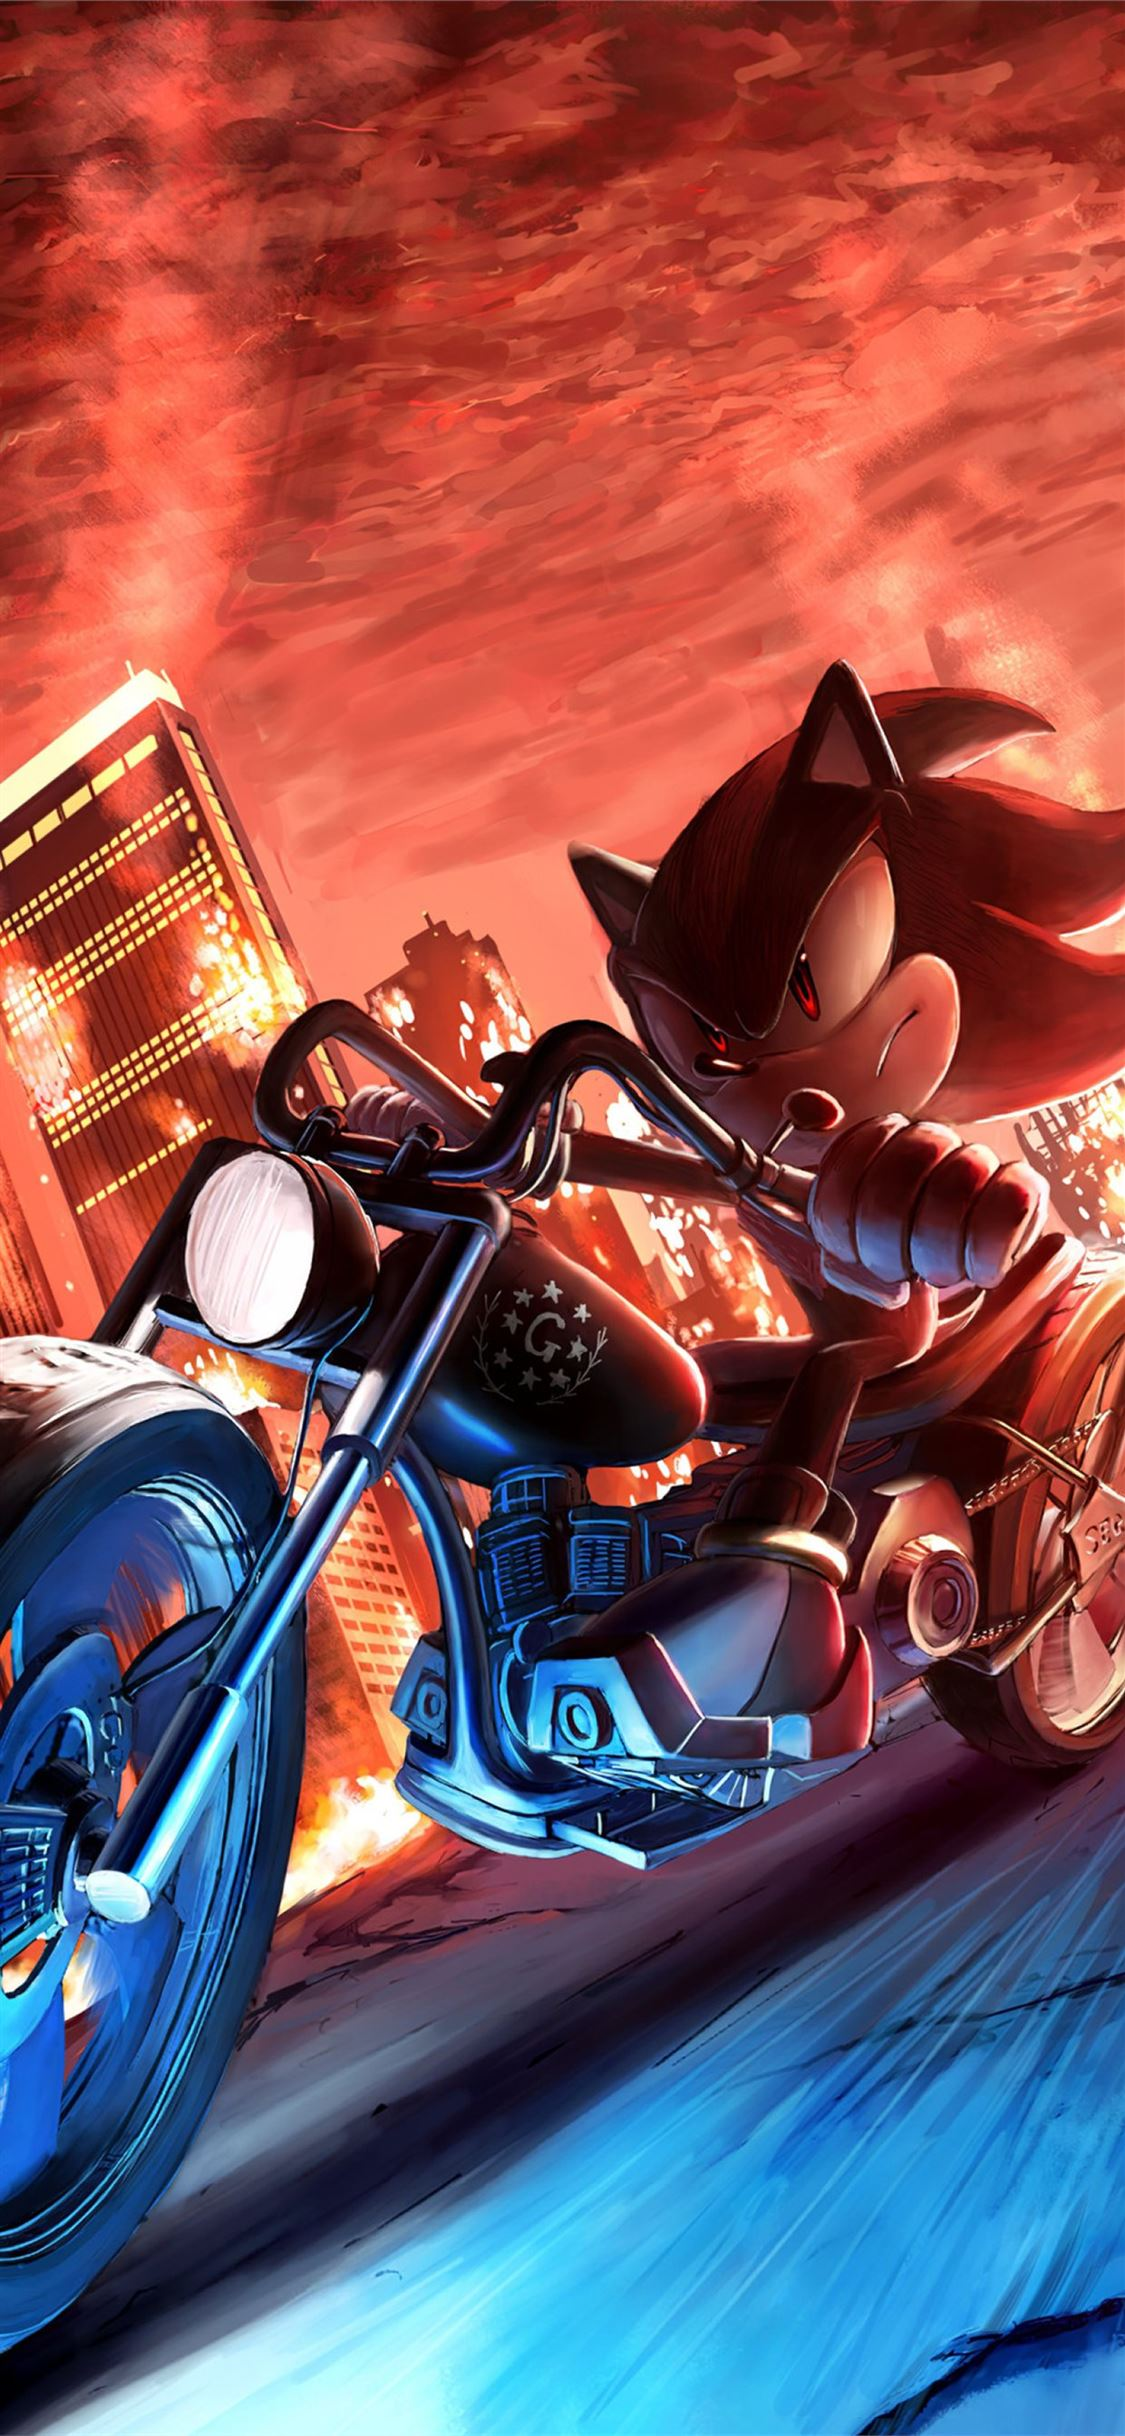 Sonic Shadow The Hedgehog 4k Iphone Wallpapers Free Download